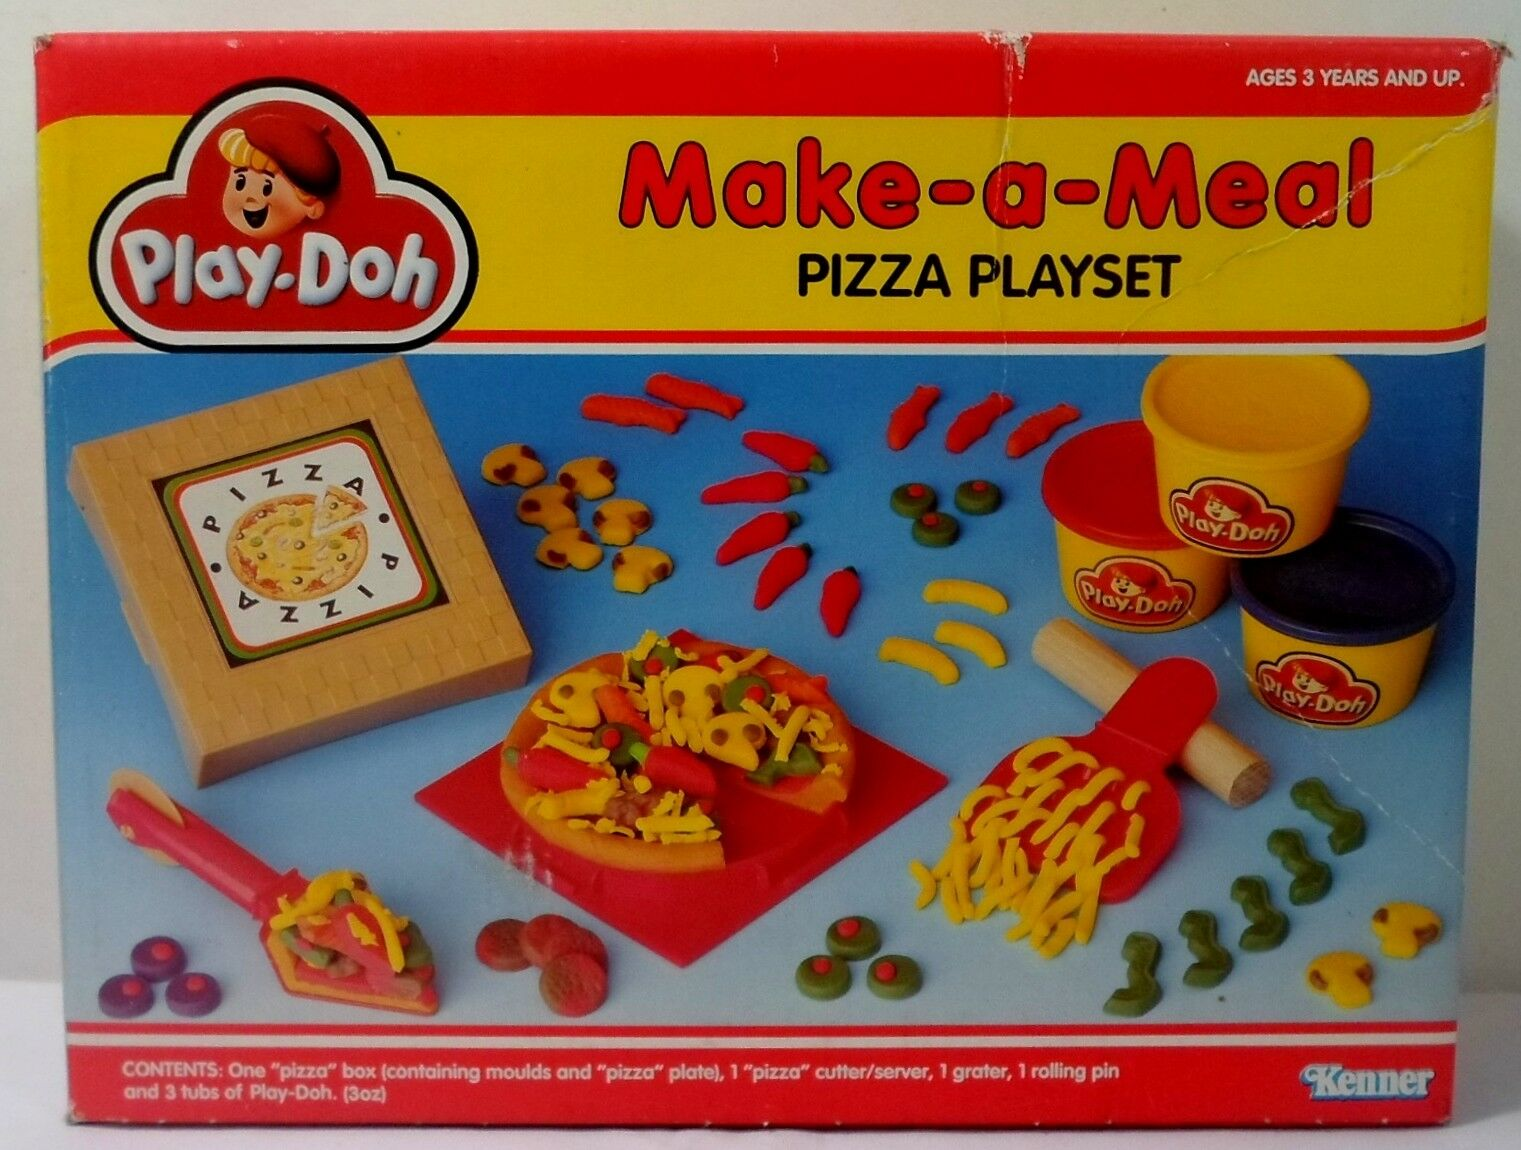 KENNER TONKA PLAY DOH VTG 1991 MAKE A MEAL PIZZA PLAYSET EUROPEAN MISP SEALED